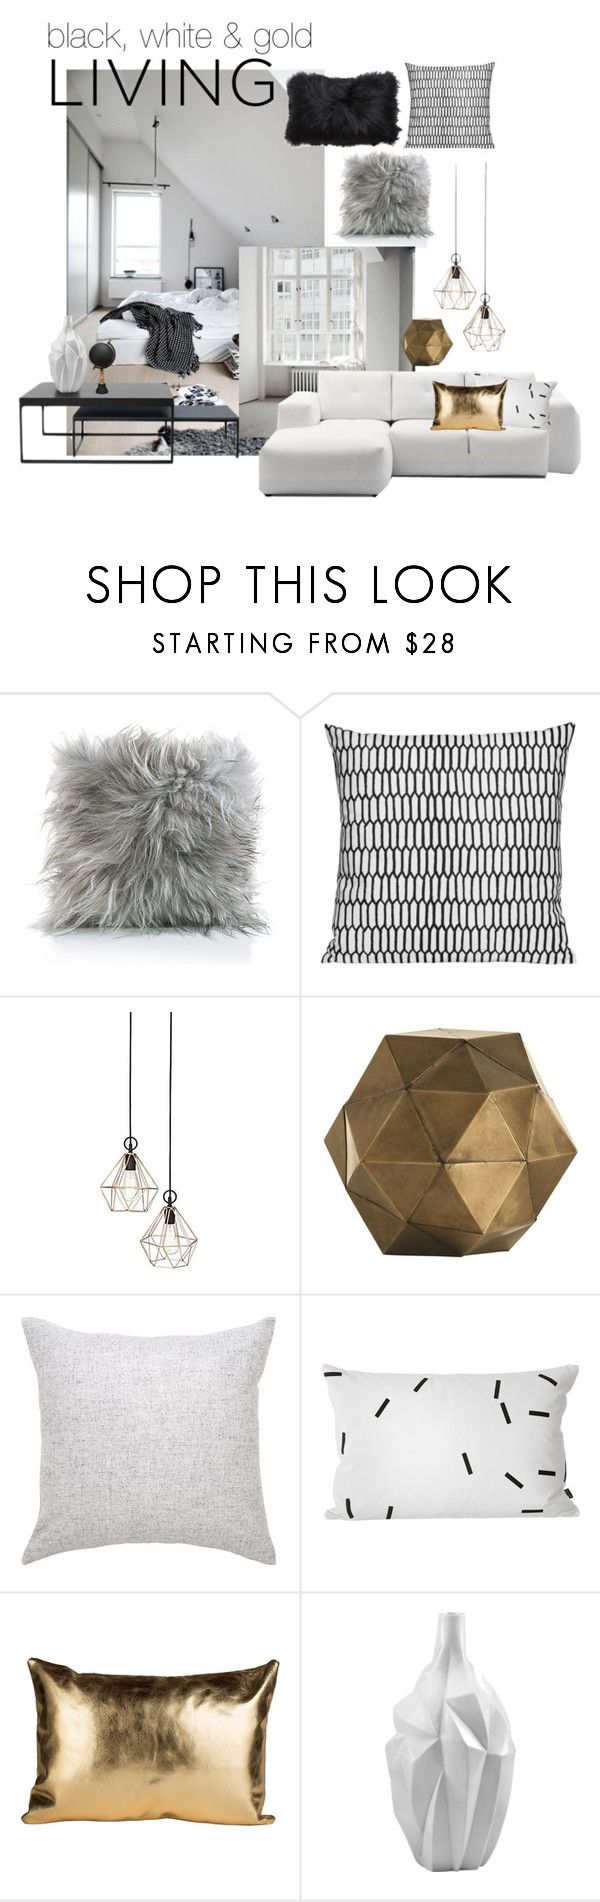 best 25+ black white gold ideas only on pinterest | white gold